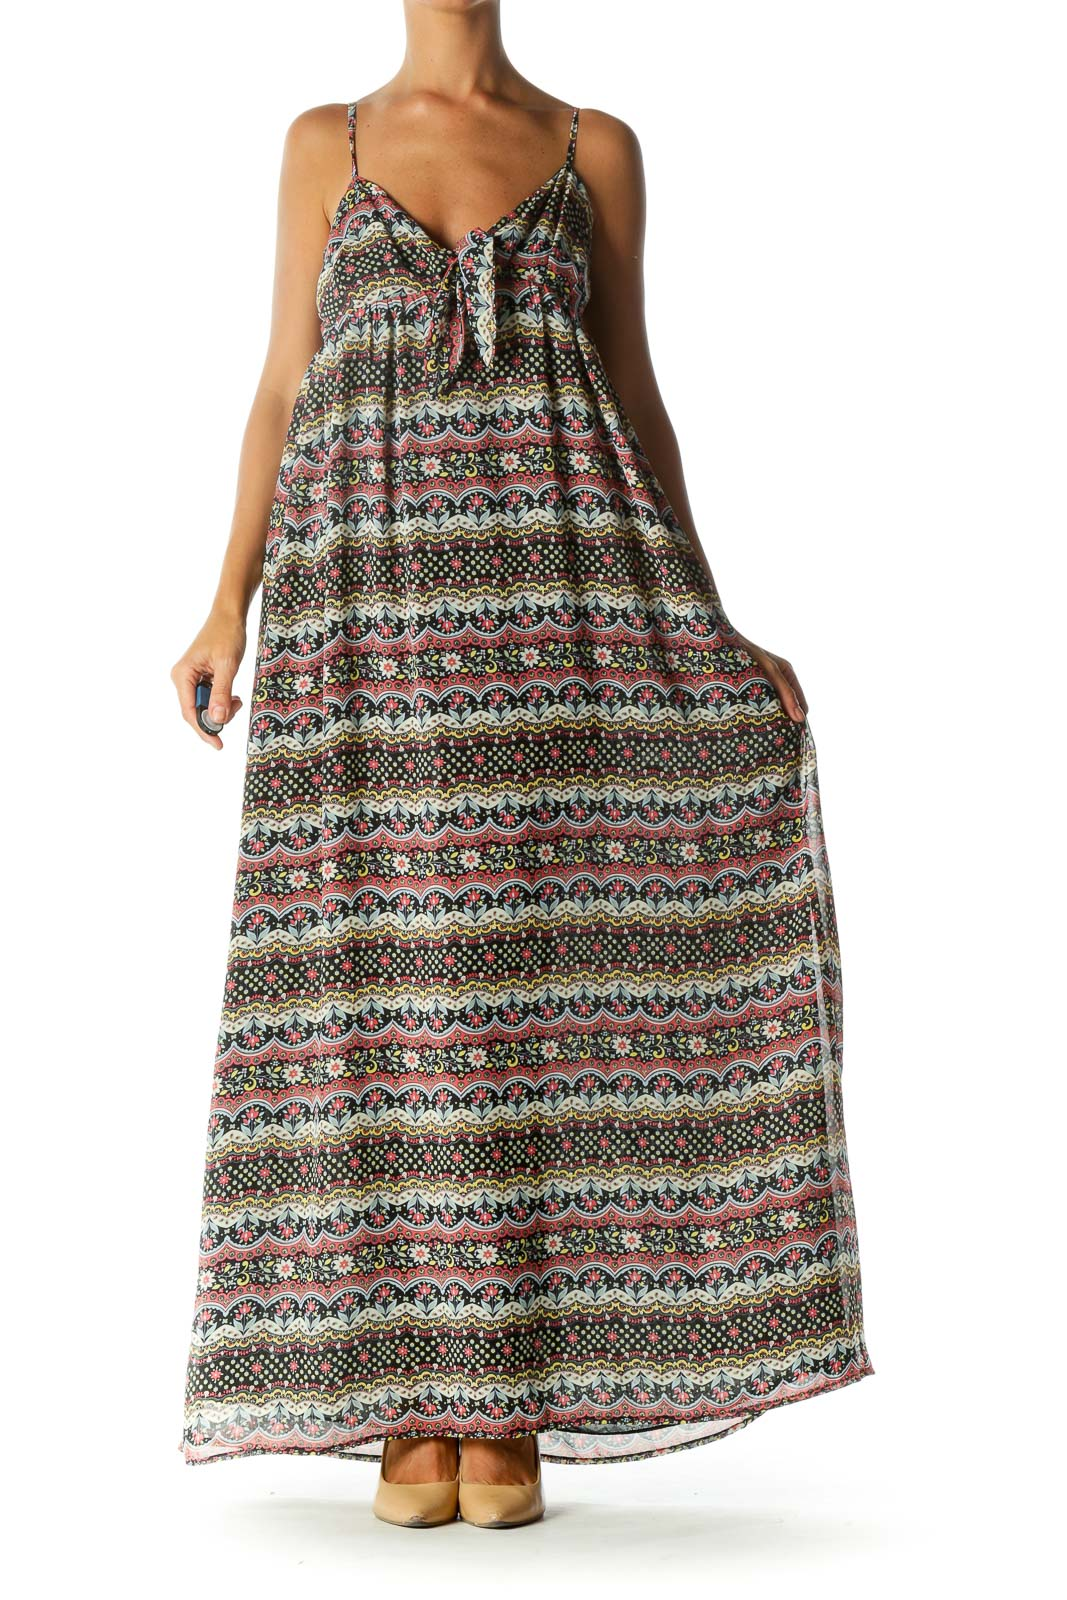 Black Pink Yellow Flower Print Cut Out Knot Spaghetti Strap Maxi Dress Front